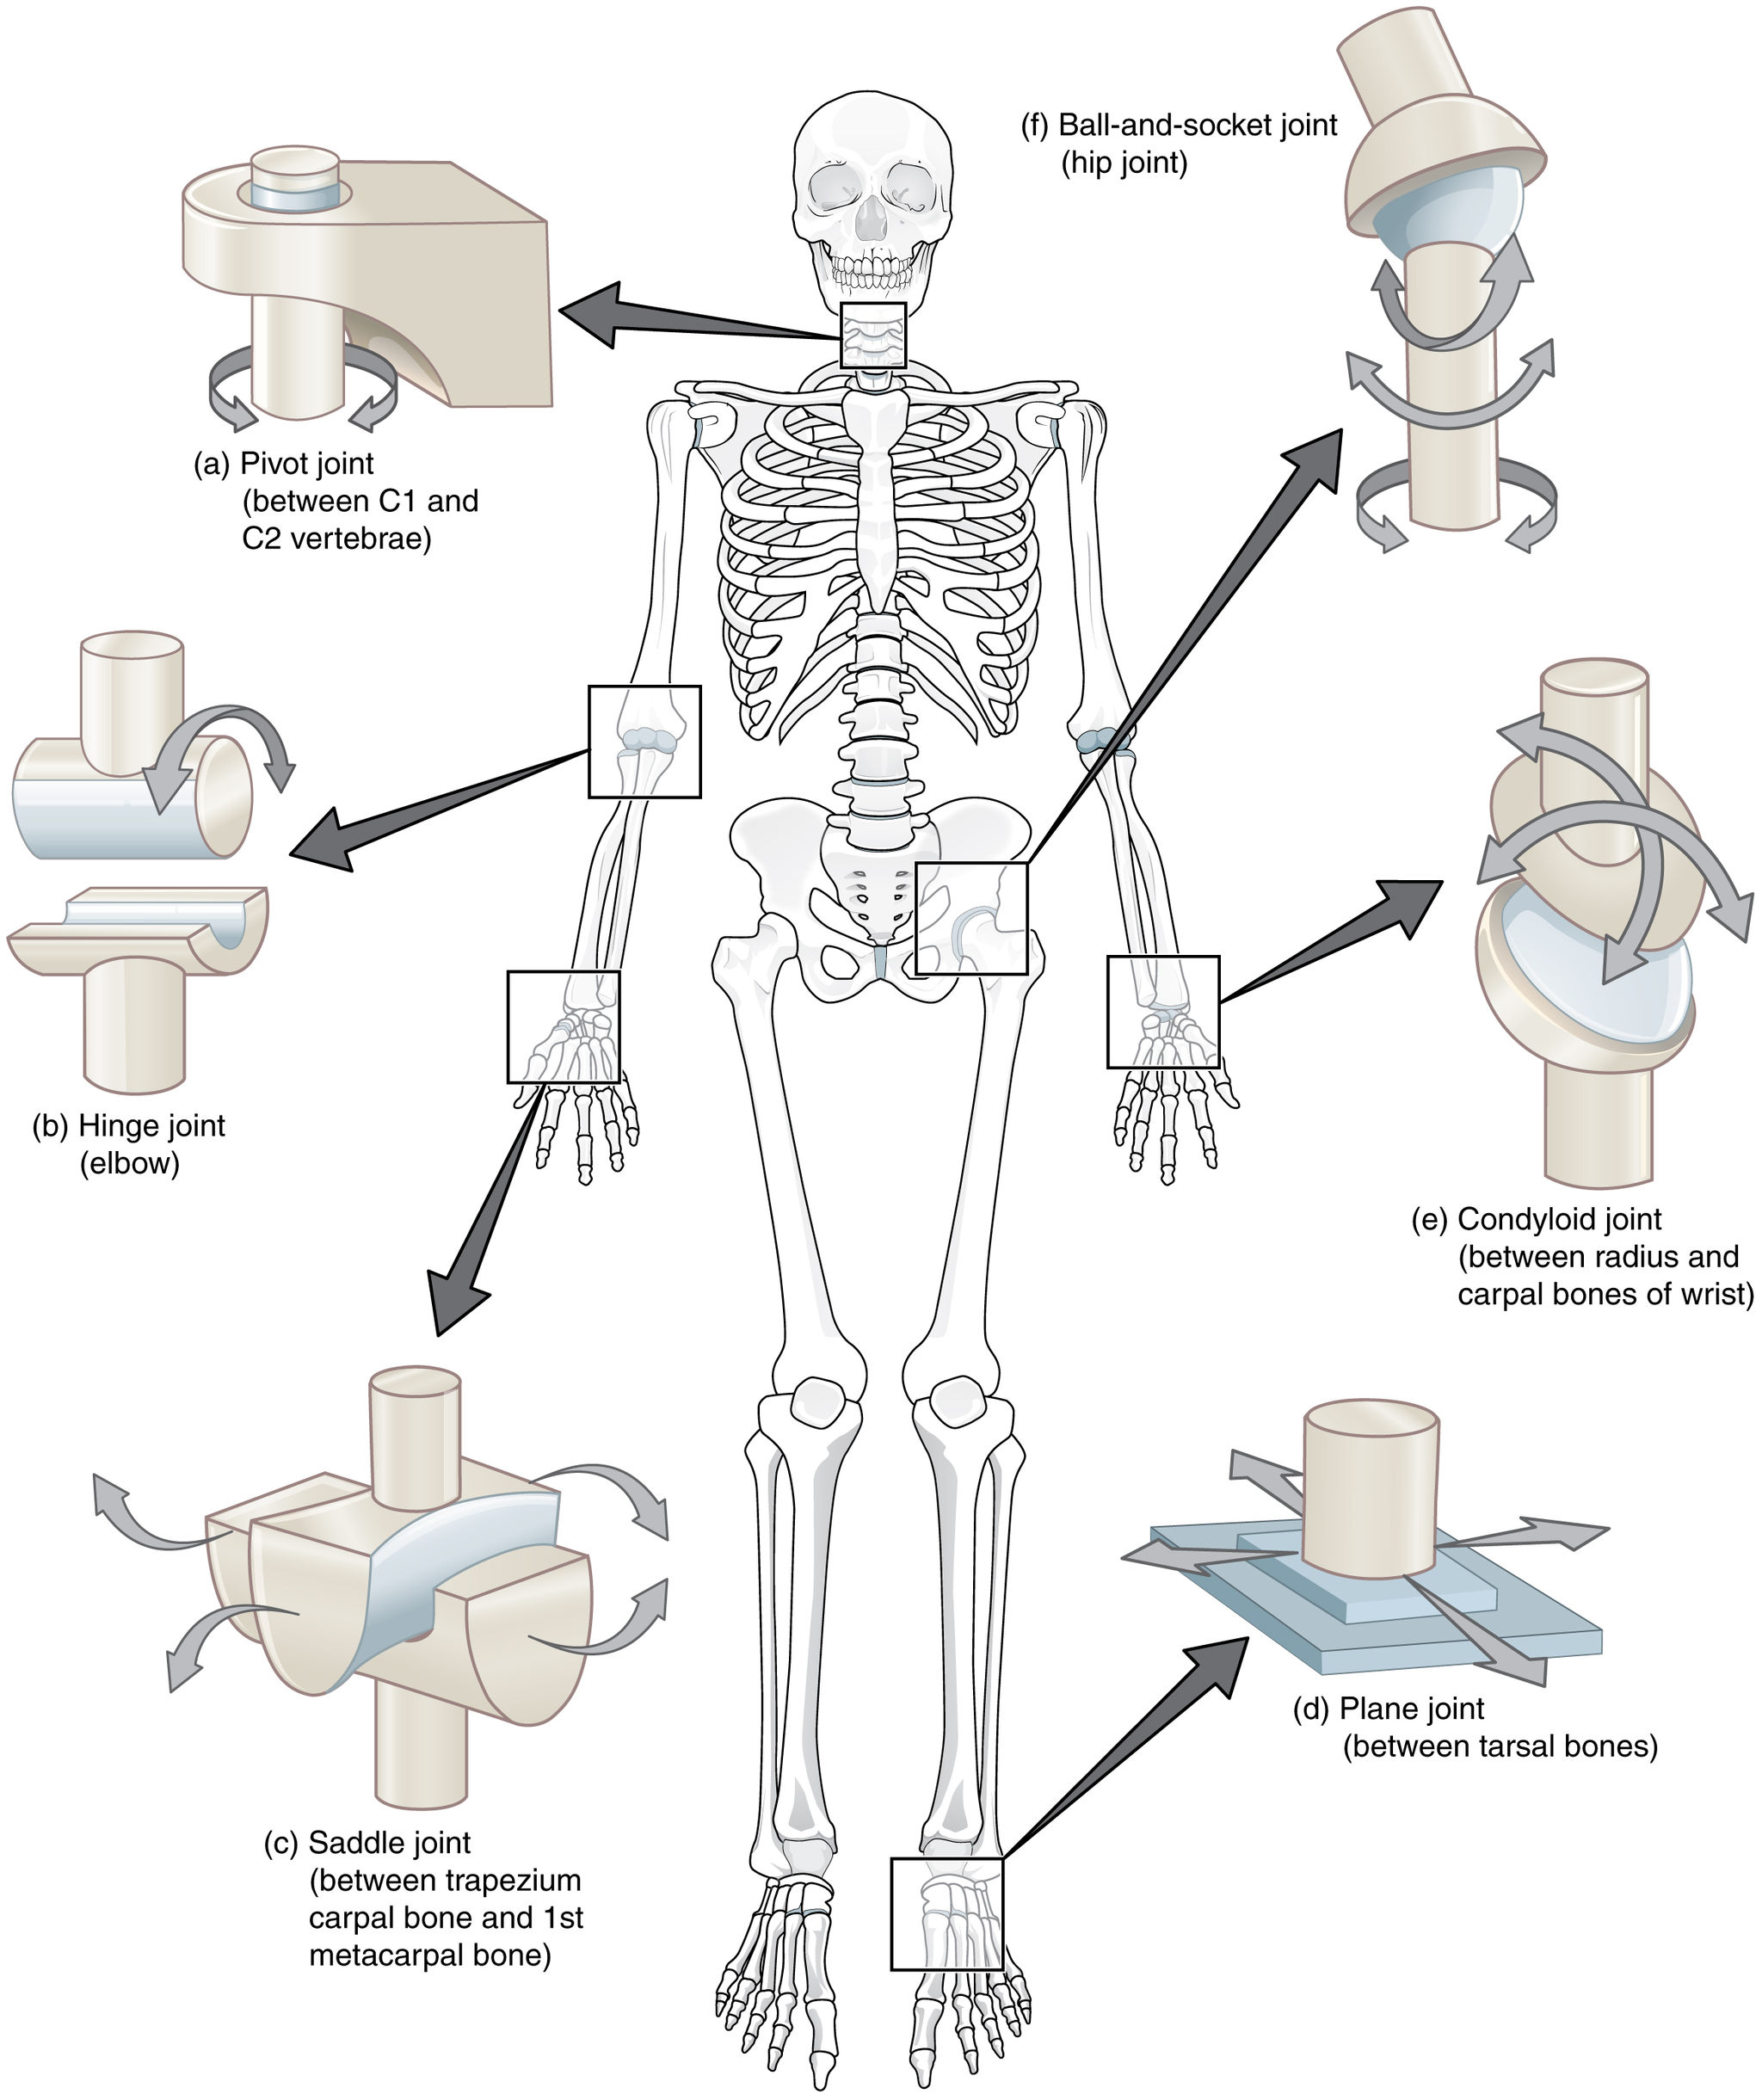 11.6.3 Types of Synovial Joints